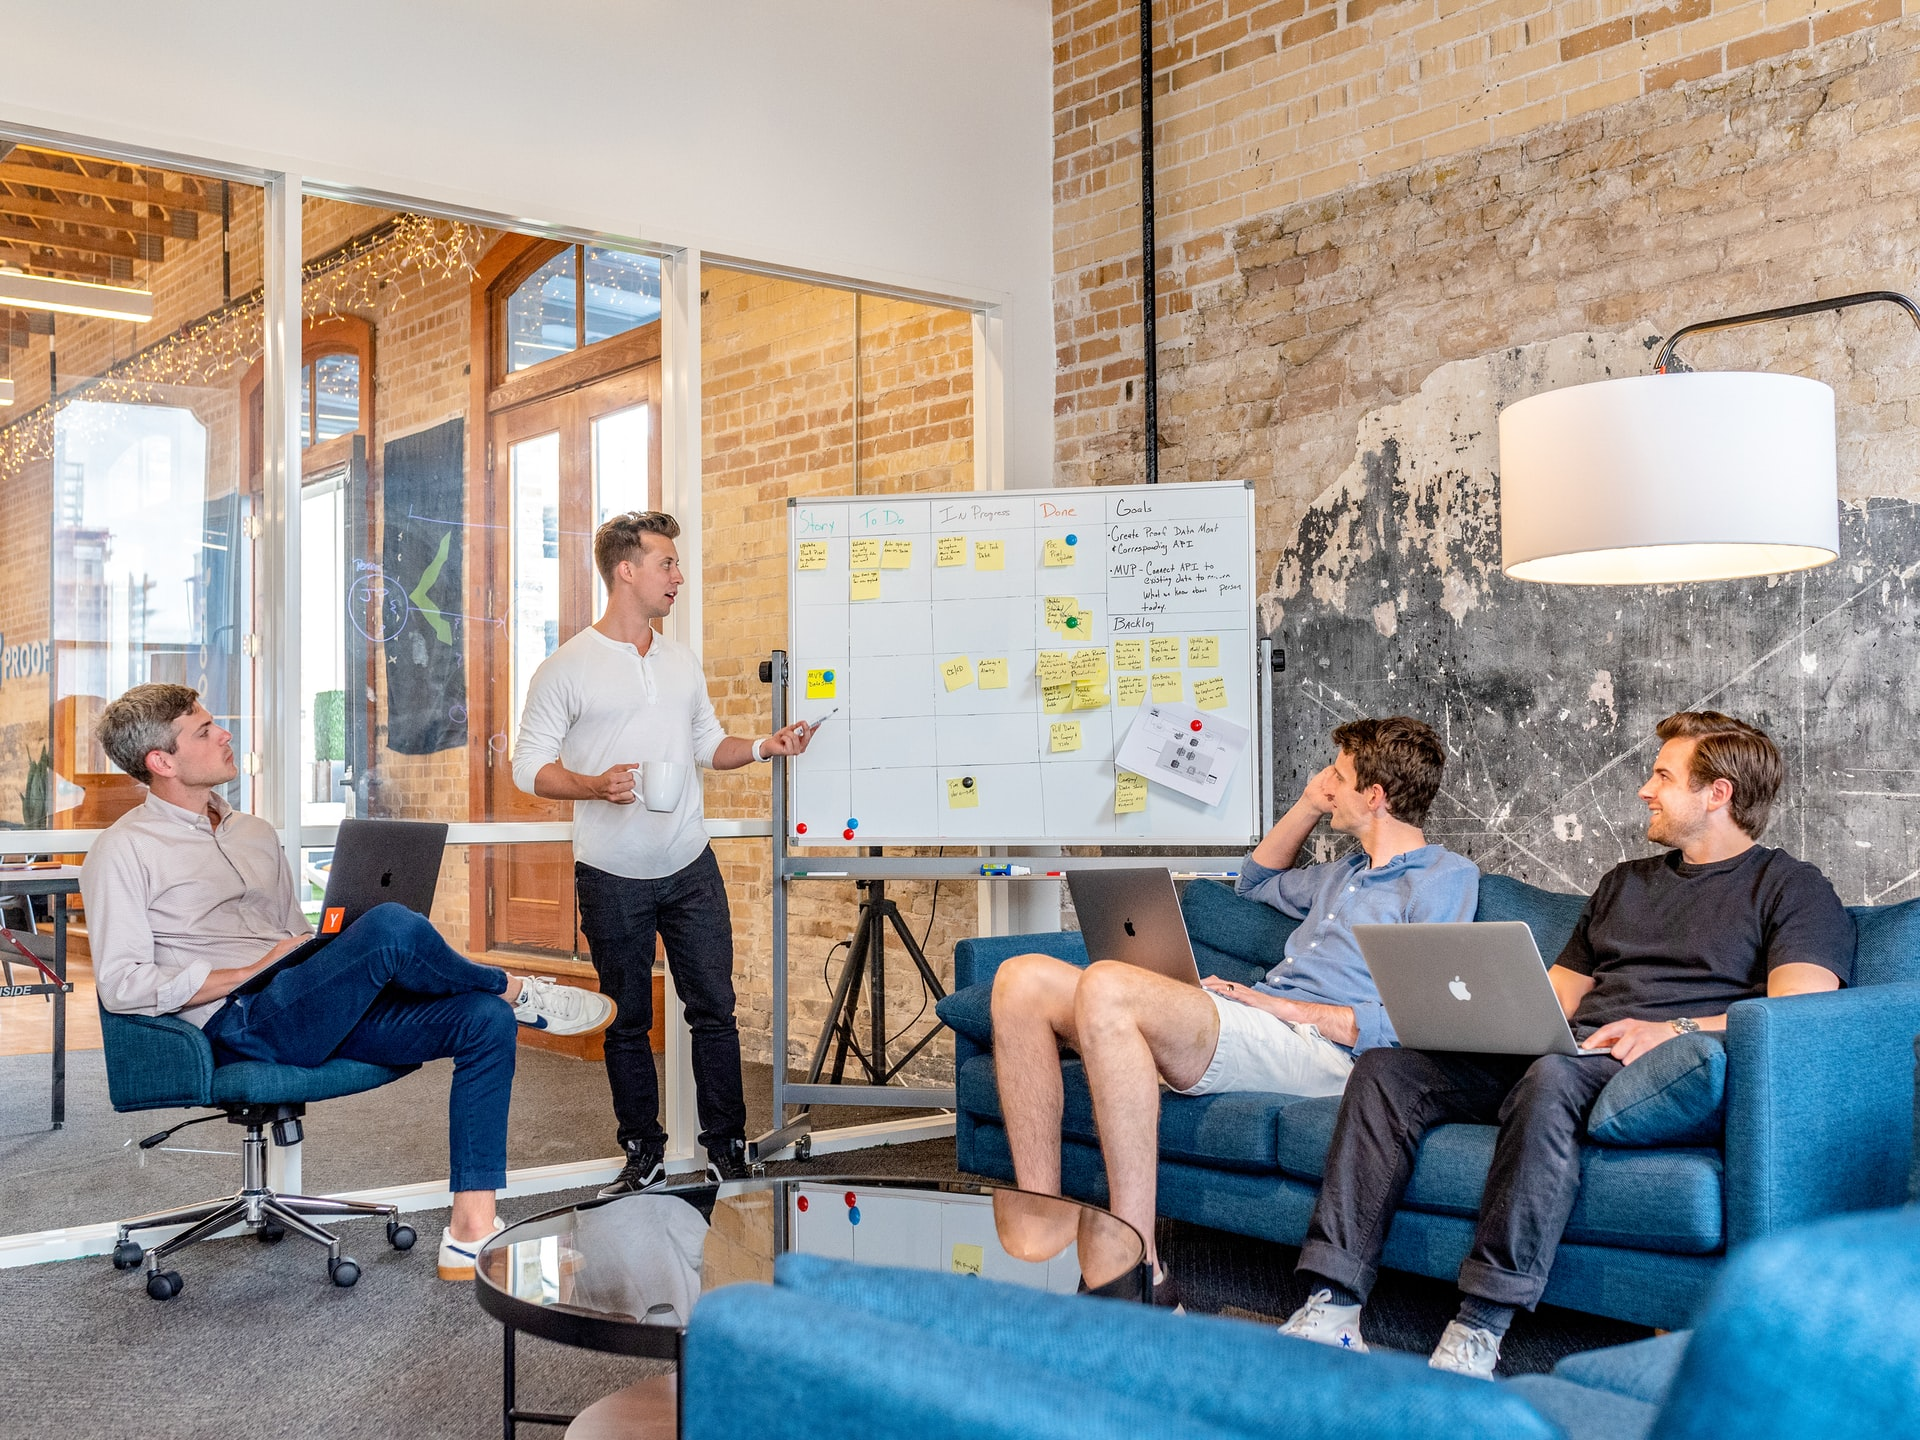 several businessmen sitting a room working on a business plan at a whiteboard